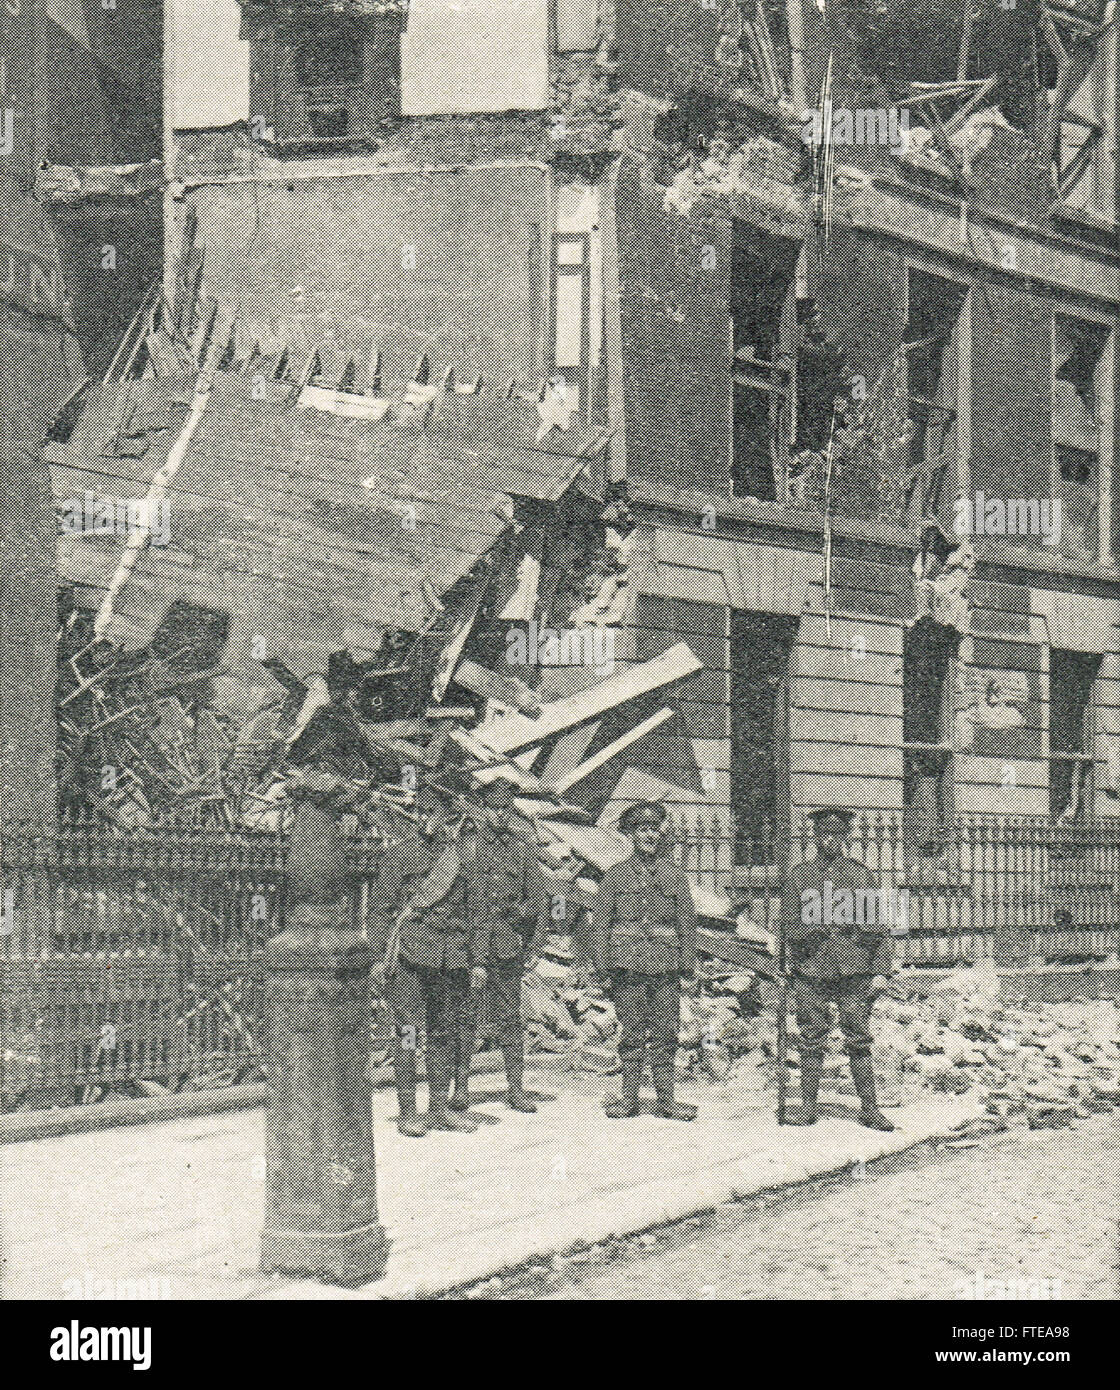 Liberty Hall shelled during Easter uprising 1916 - Stock Image